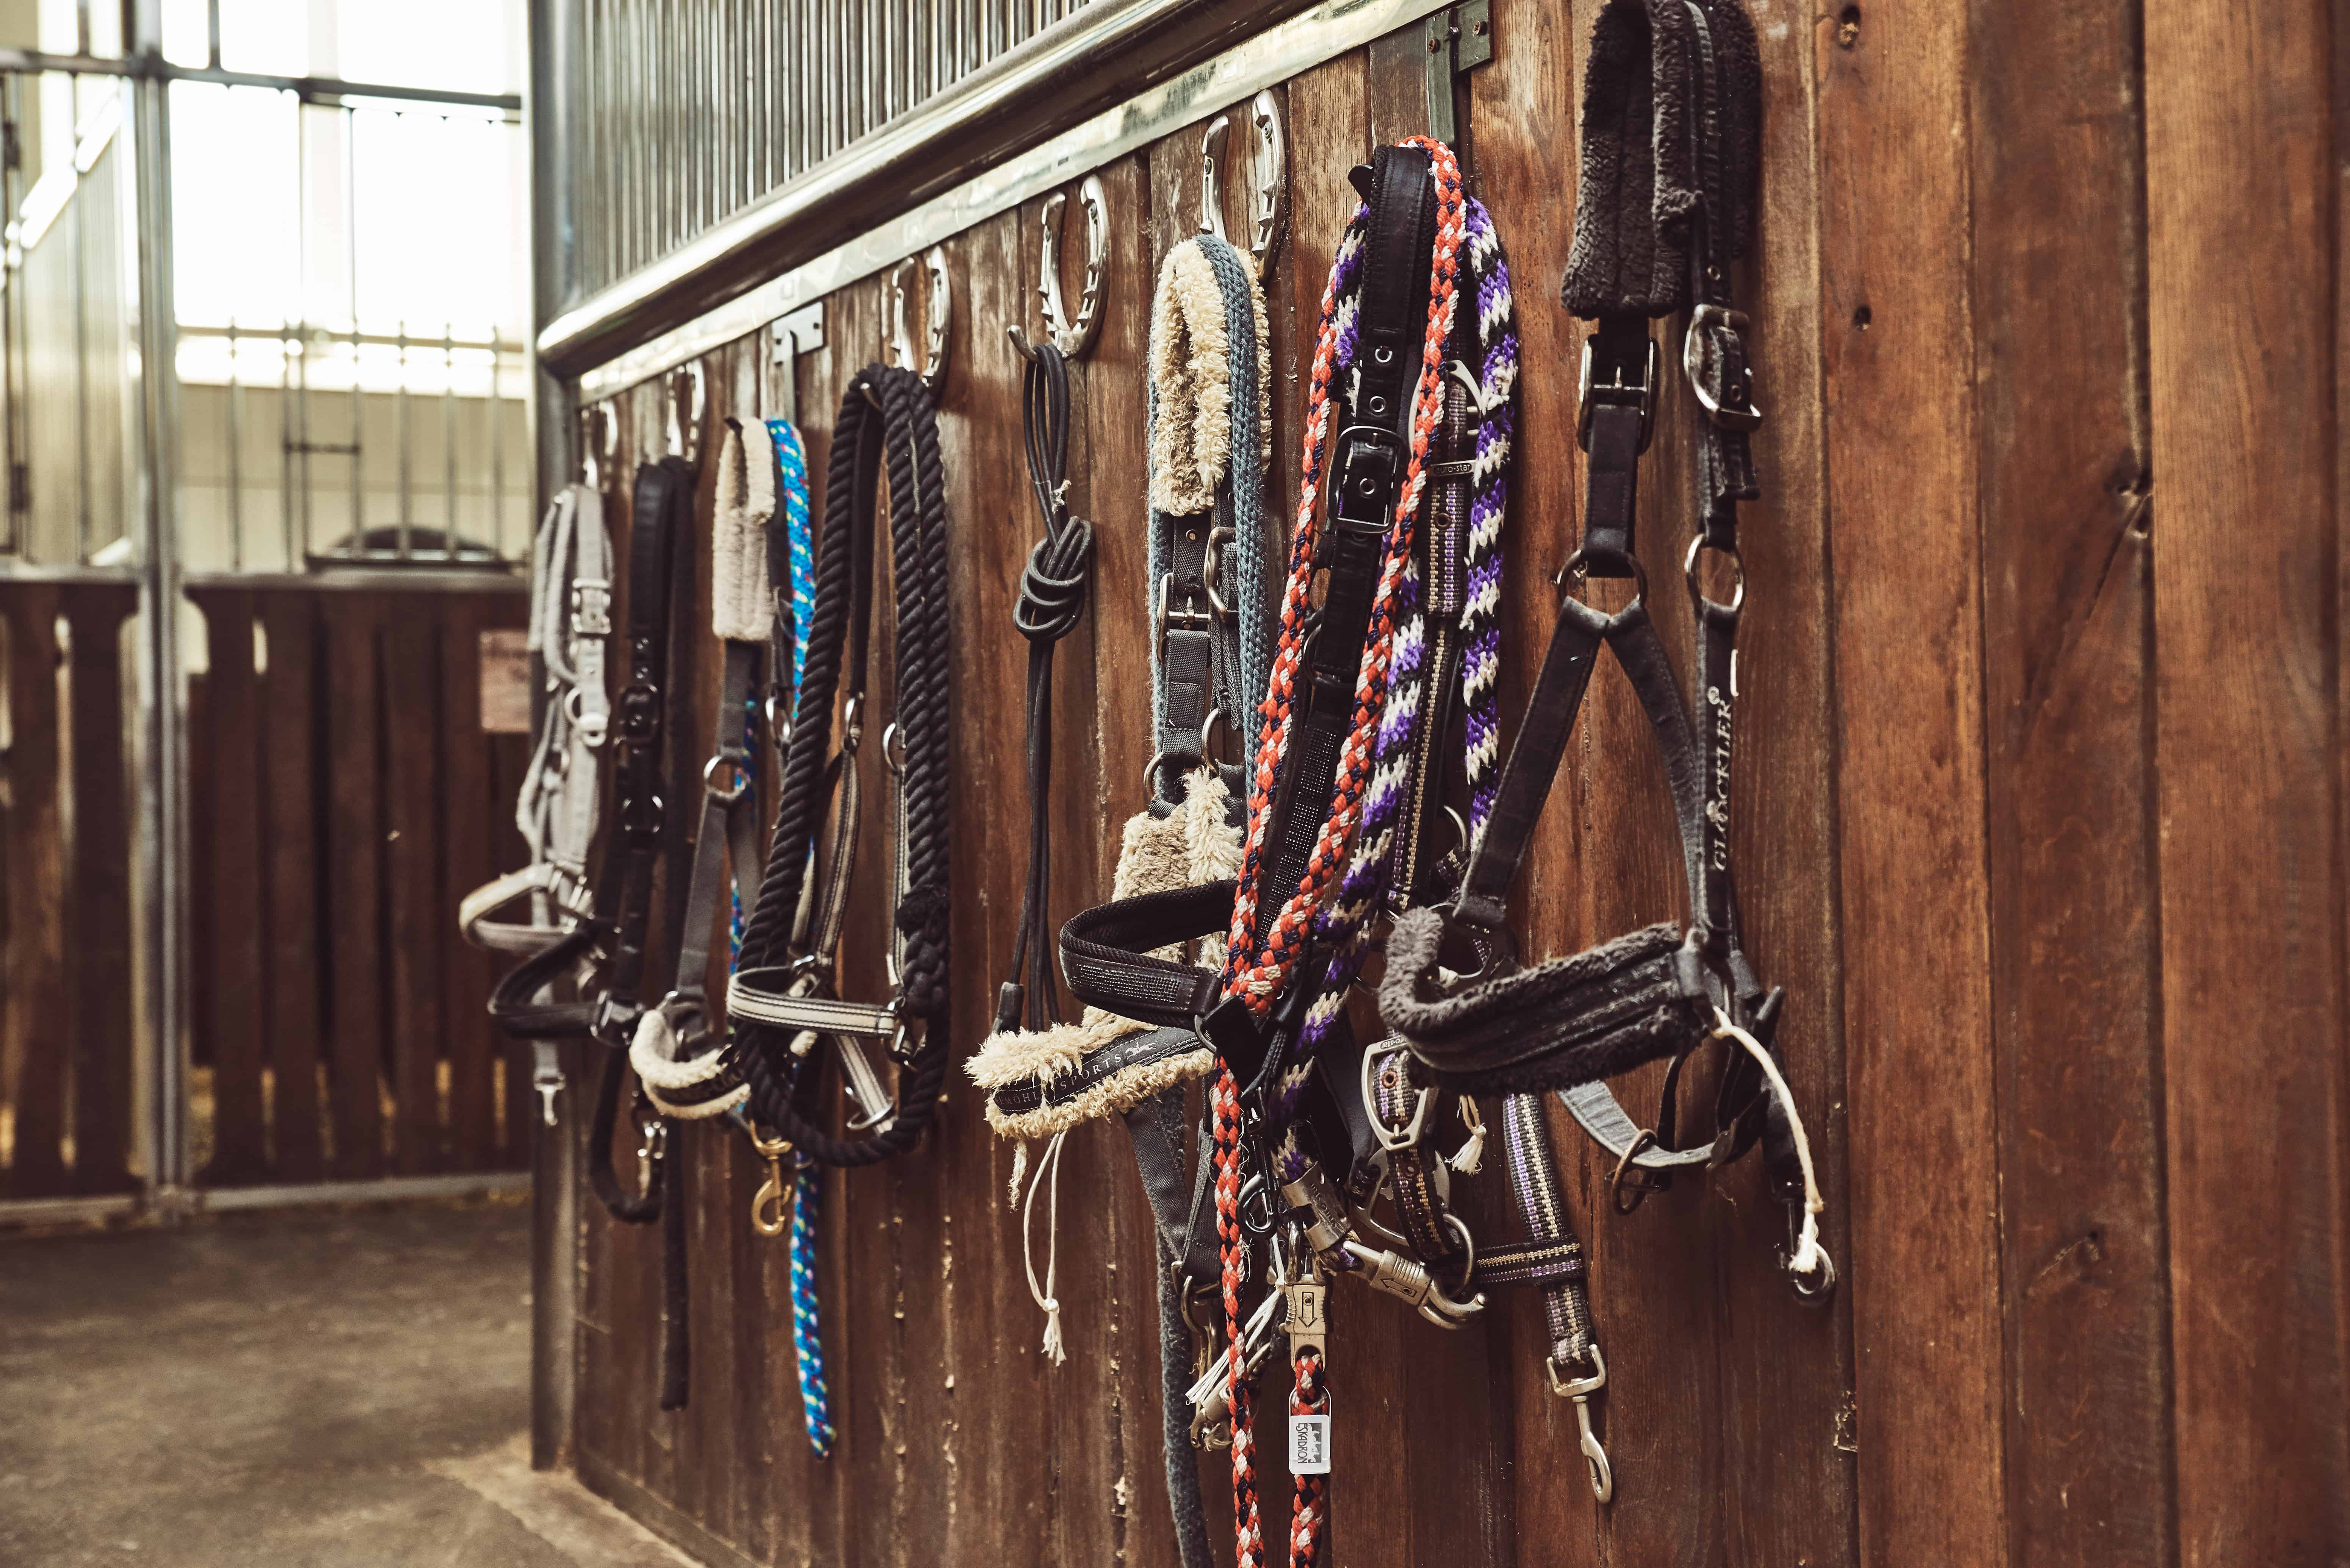 Pay Close Attention to Nylon Halters, Leads During Post-Strangles Cleaning